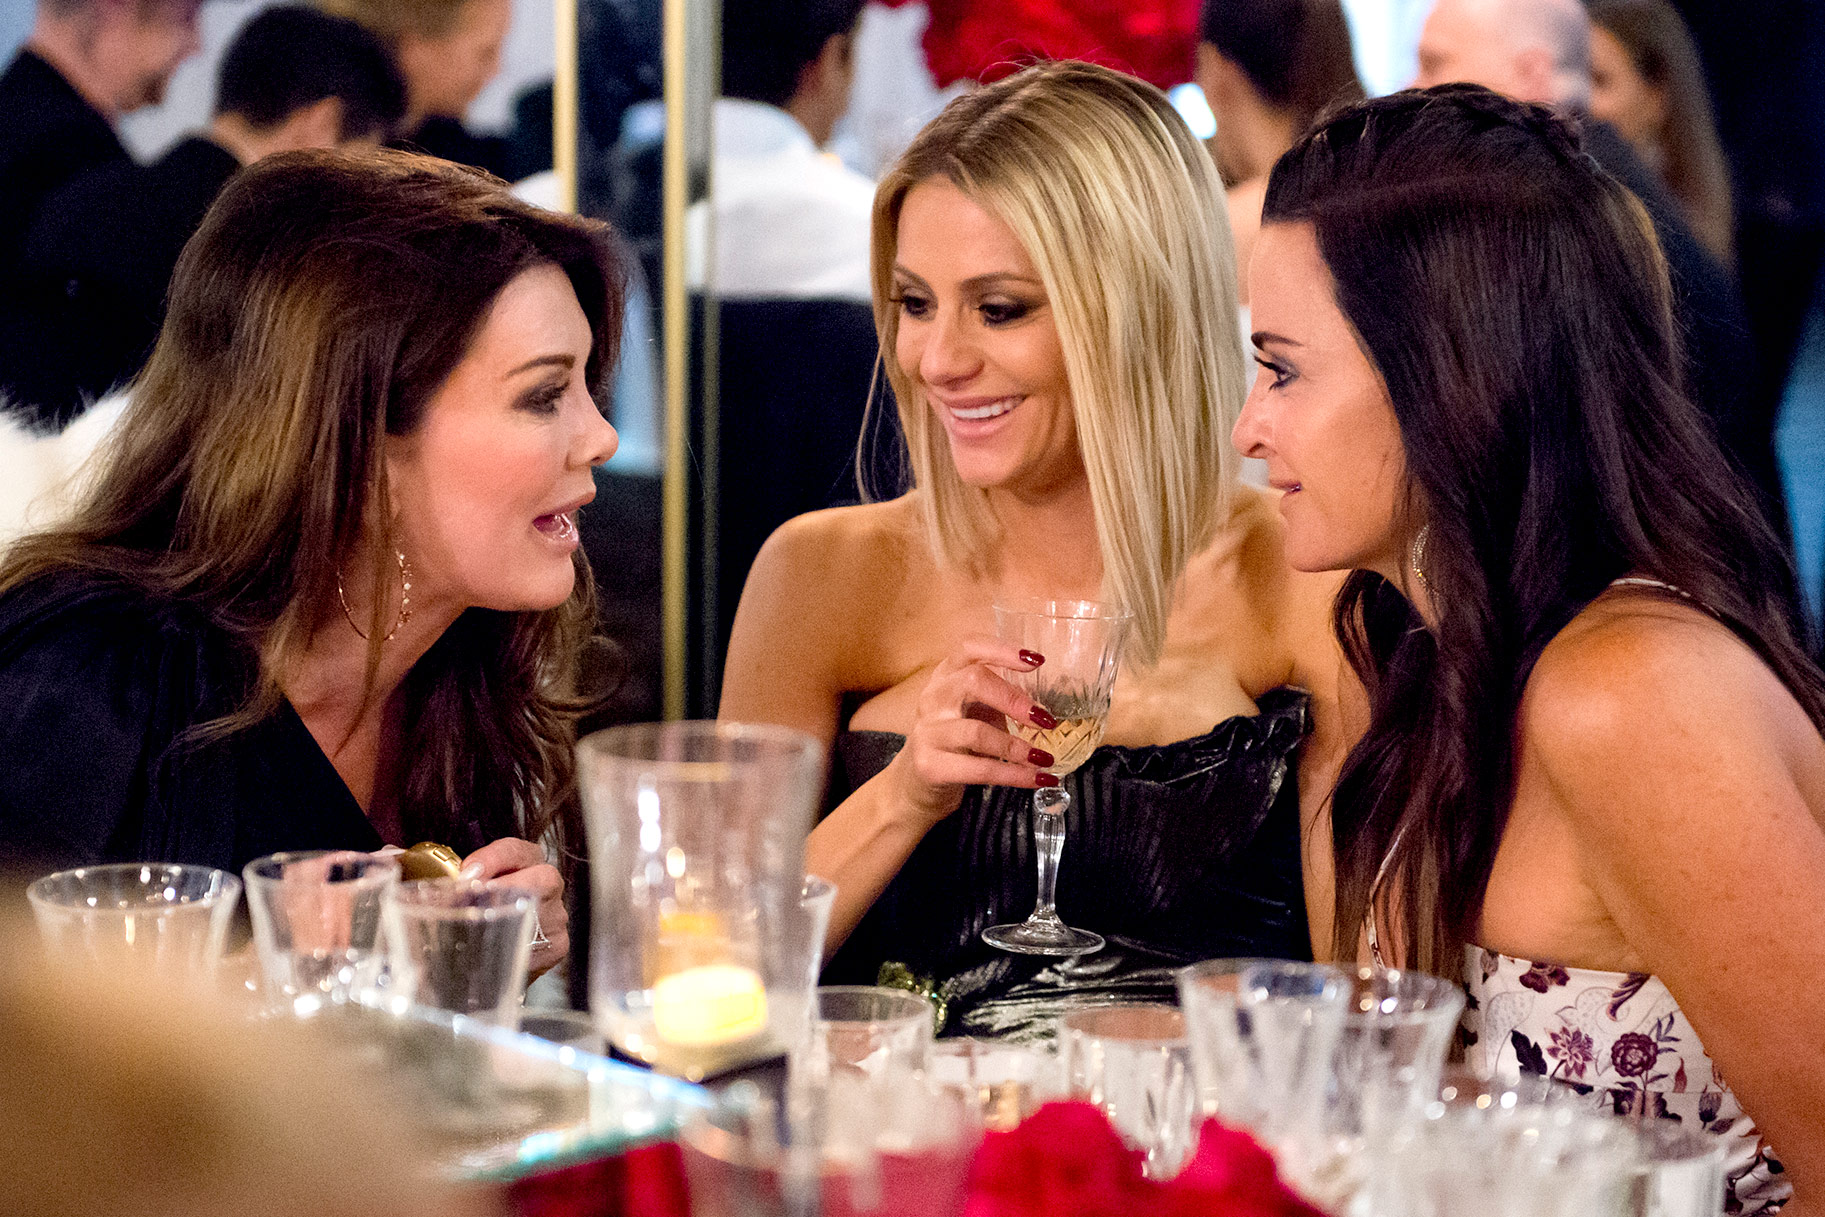 Lisa Vanderpump, Dorit Kemsley, and Kyle Richards on The Real Housewives of Beverly Hills